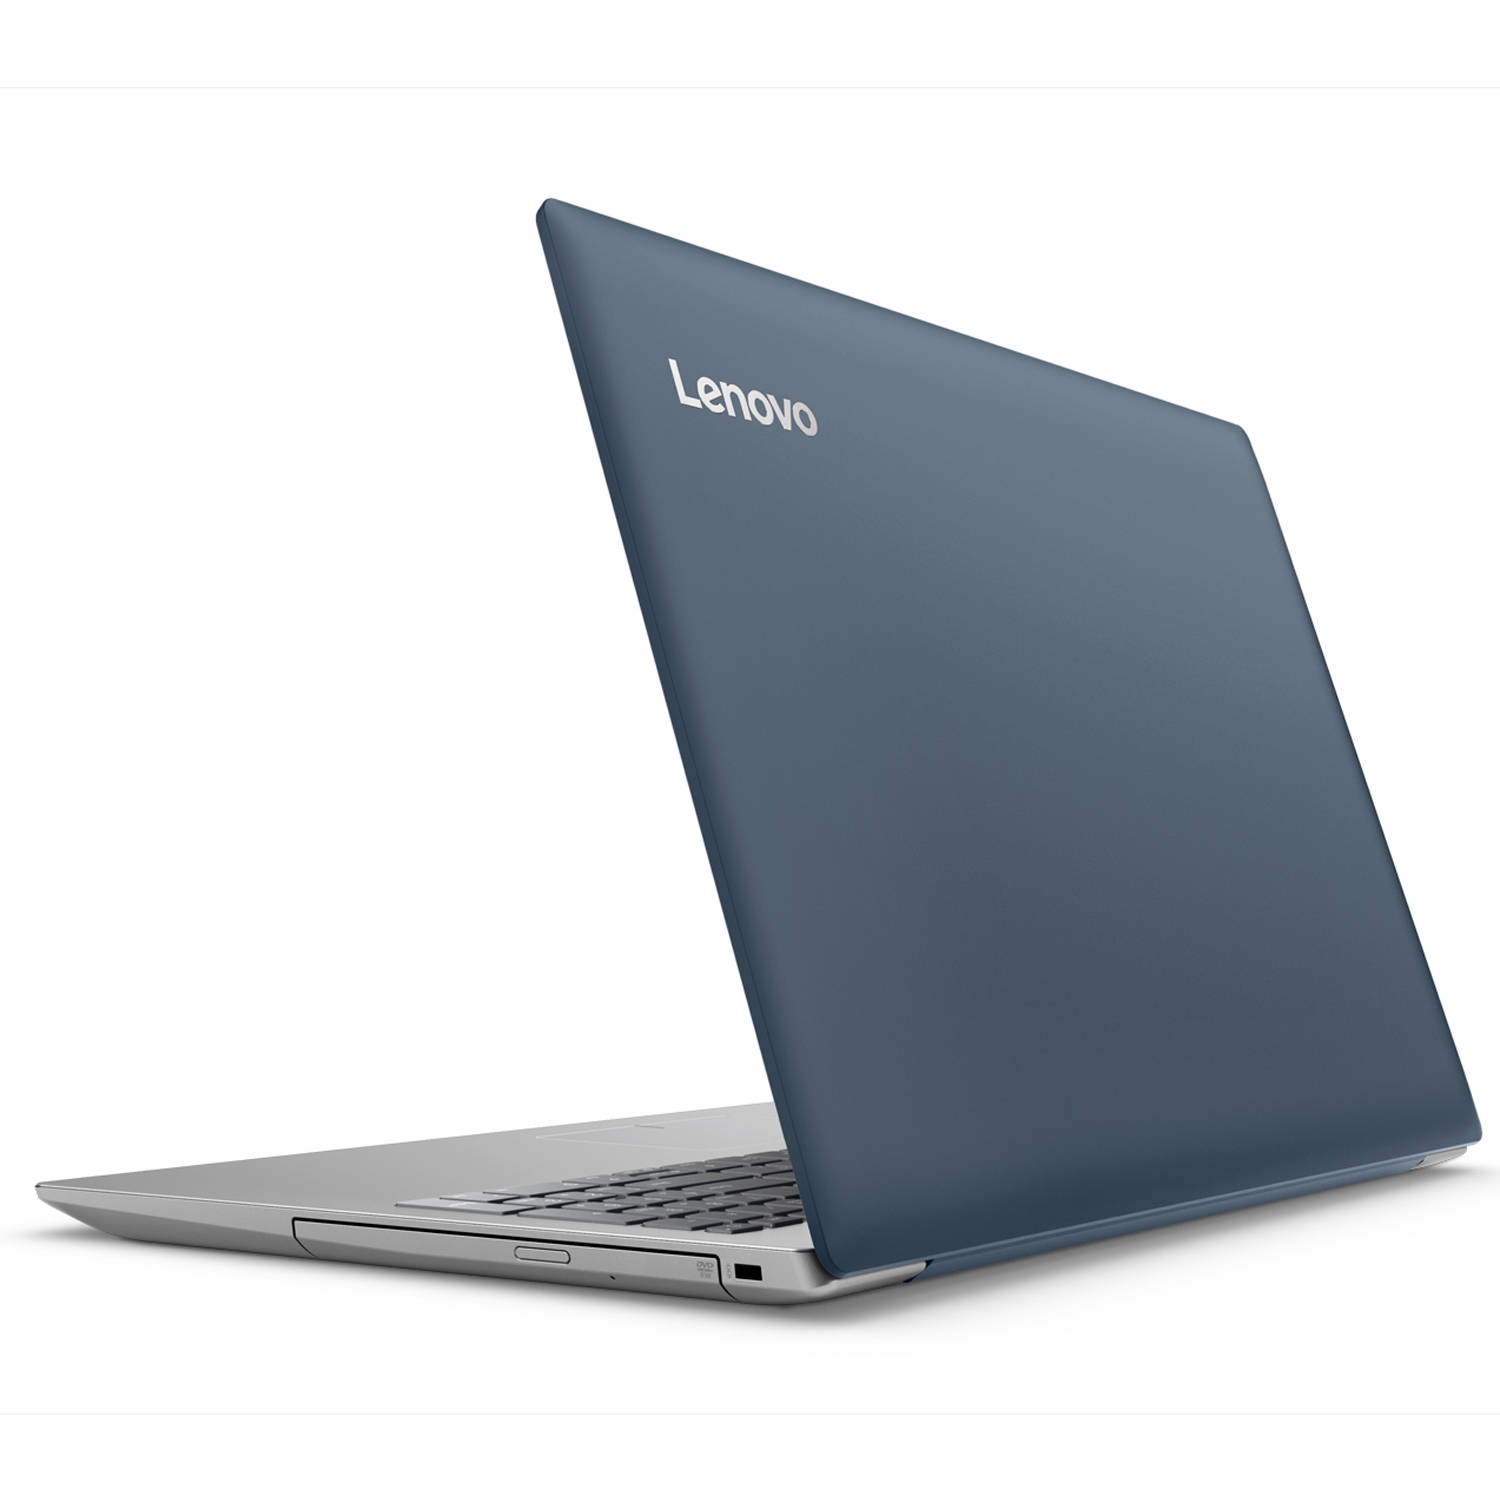 "Lenovo ideapad 320 15 6"" Laptop Windows 10 AMD A9 9420 Dual Core Processor 4GB RAM 1TB Hard Drive yx Black Walmart"